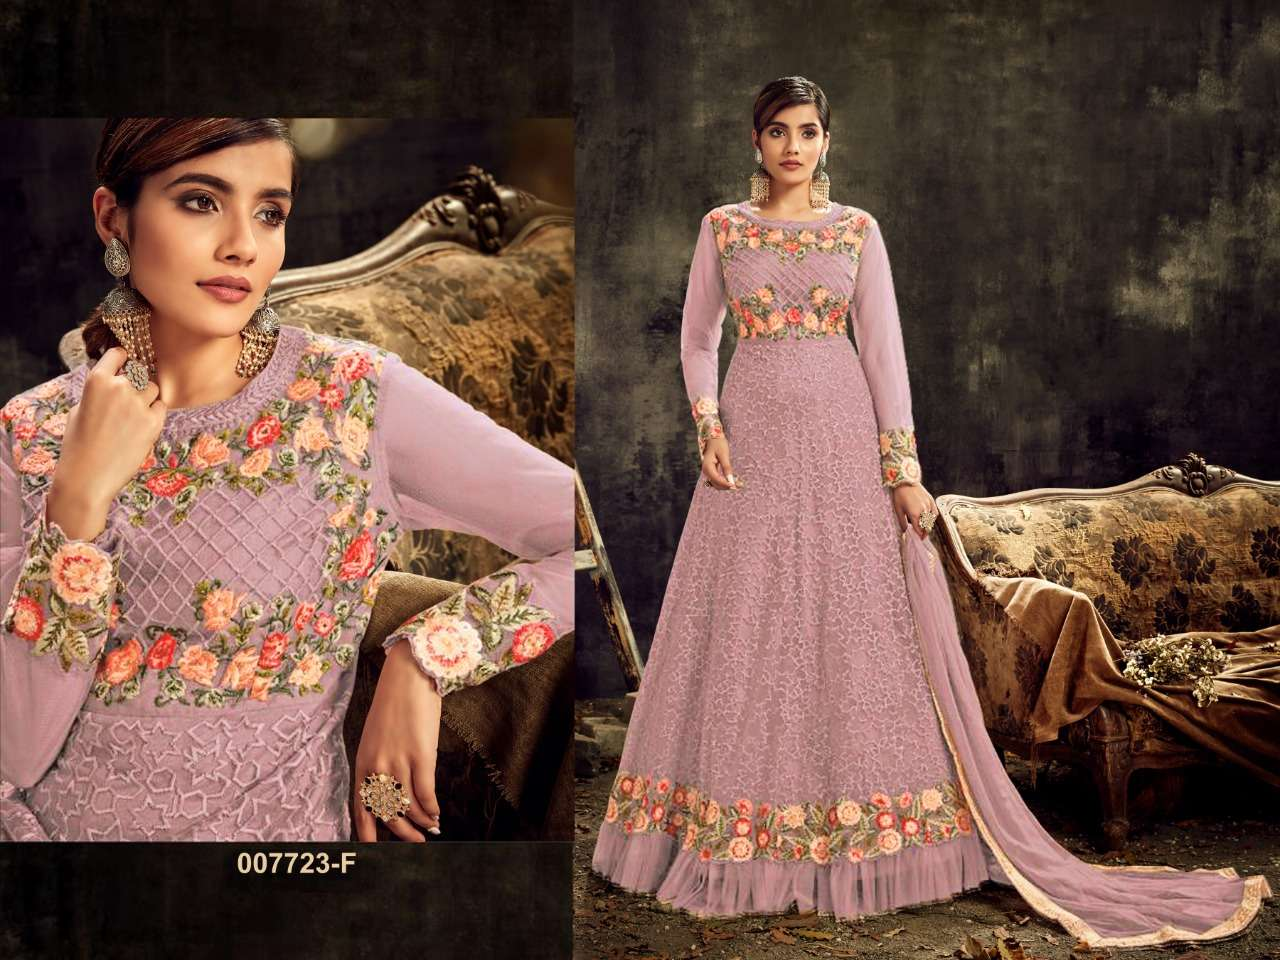 HOTLADYY 7723 HEAVY NET EMBROIDERY WORK PARTYWEAR UNSTITCHED GOWN WITH DUPATTA IN SINGLES